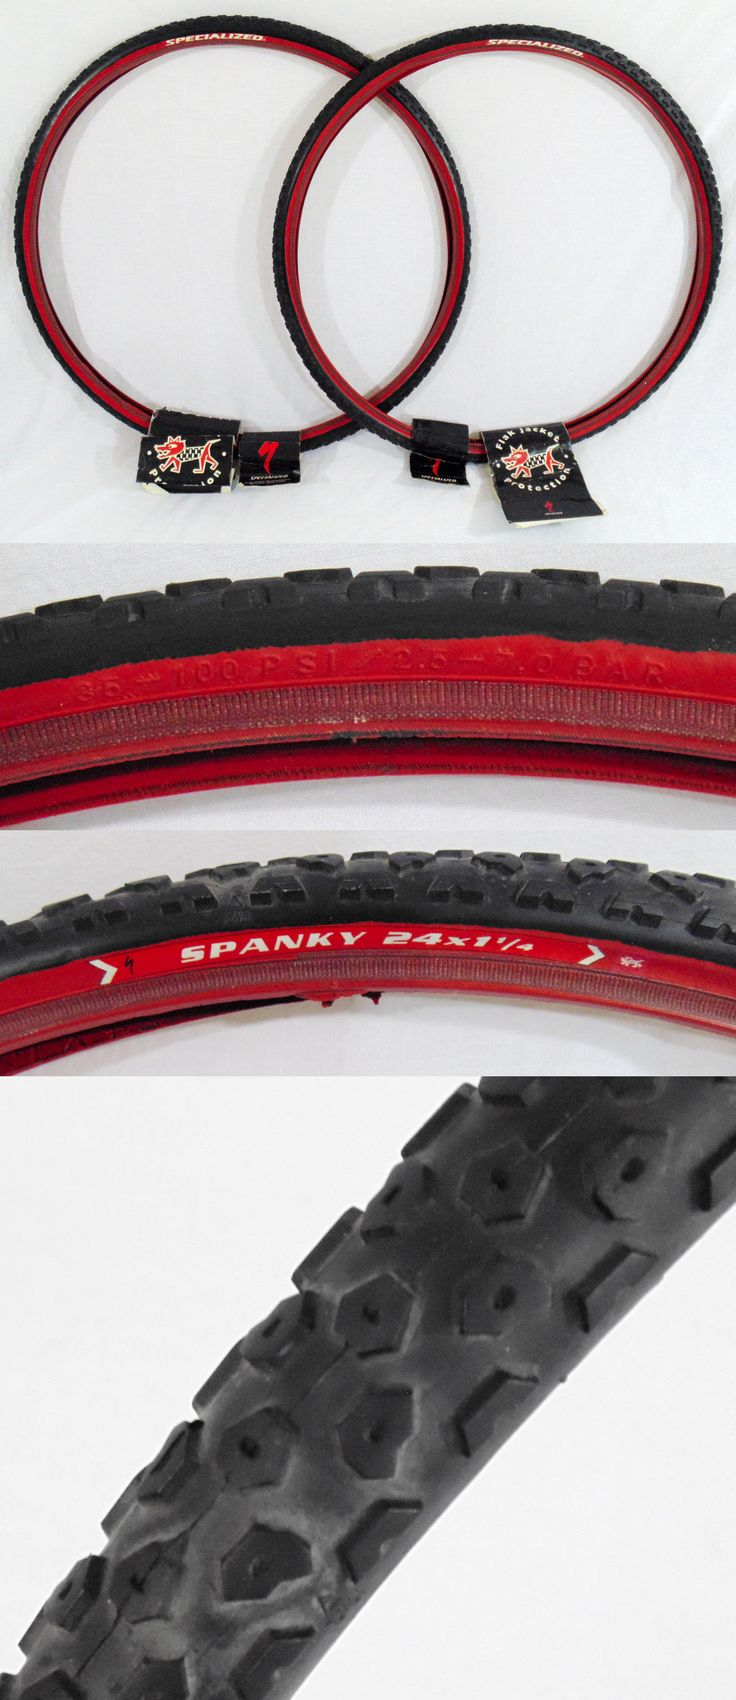 Other Bicycle Accessories 158998: 1 Pair Of Specialized Spanky 24 X 1 1 4 Tires New Old Stock 24 Bmx Cruiser -> BUY IT NOW ONLY: $49.99 on eBay!